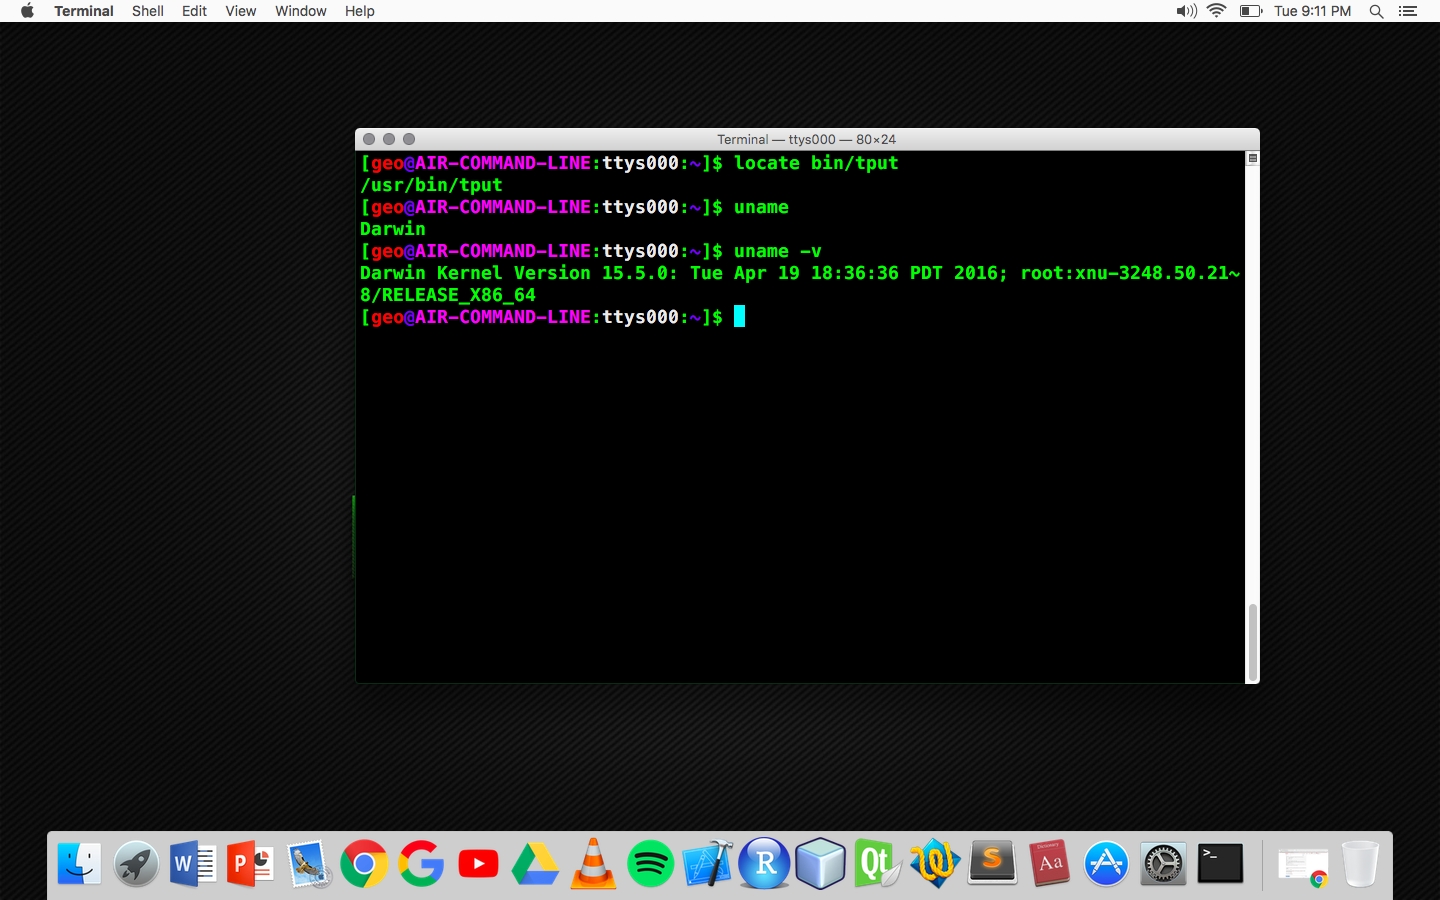 I want to change my terminal view so that my command prompt